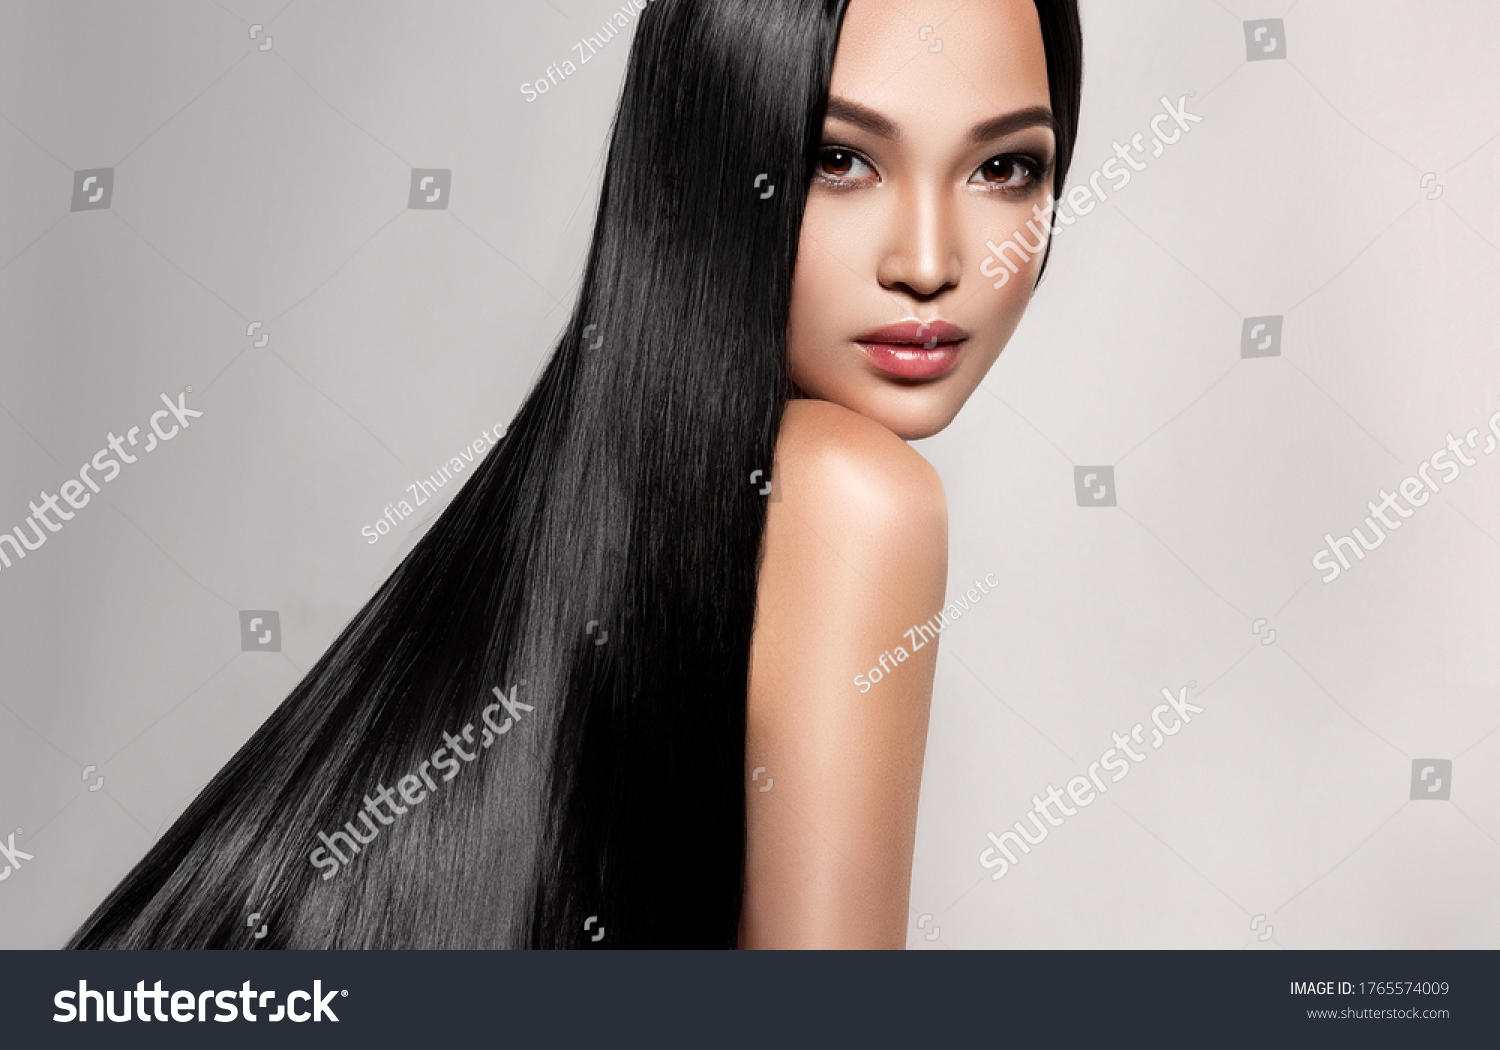 Beautiful asian model girl with shiny black and straight long hair . Keratin straightening . Treatment, care and spa procedures for hair . Chinese girl with smooth hairstyle #1765574009